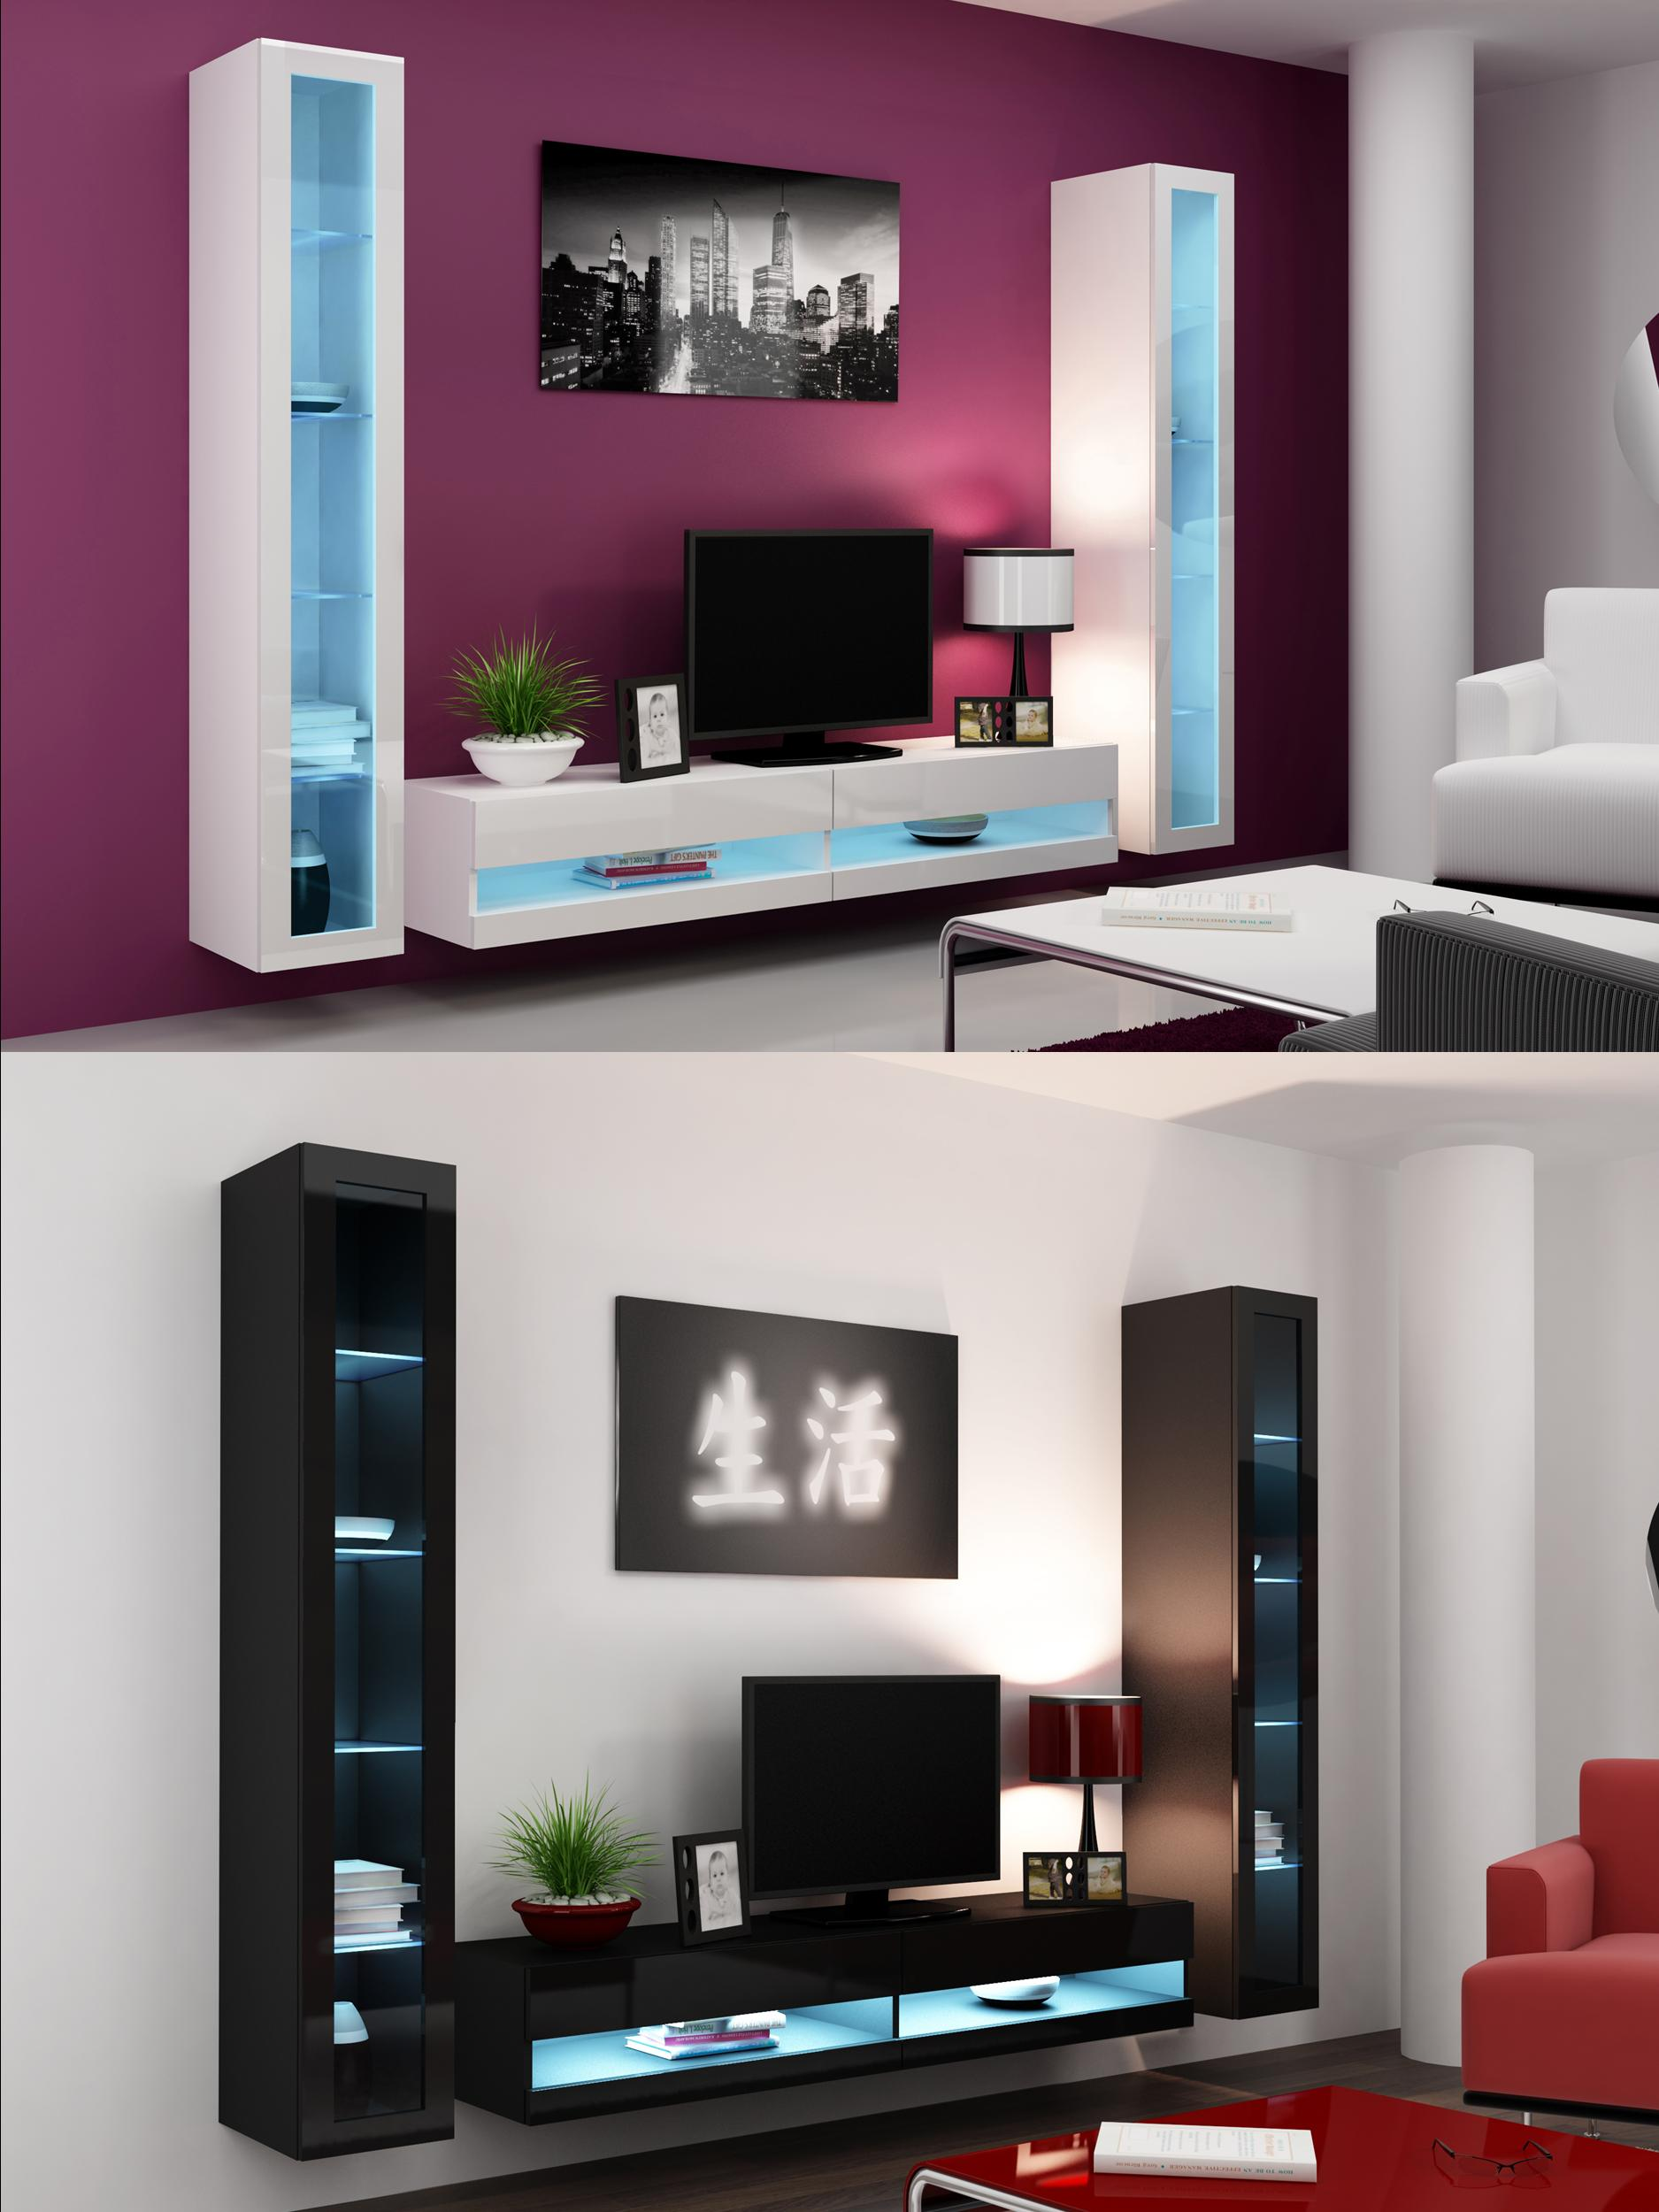 Led Tv Design Interiors Design # Meuble A Led De Tv